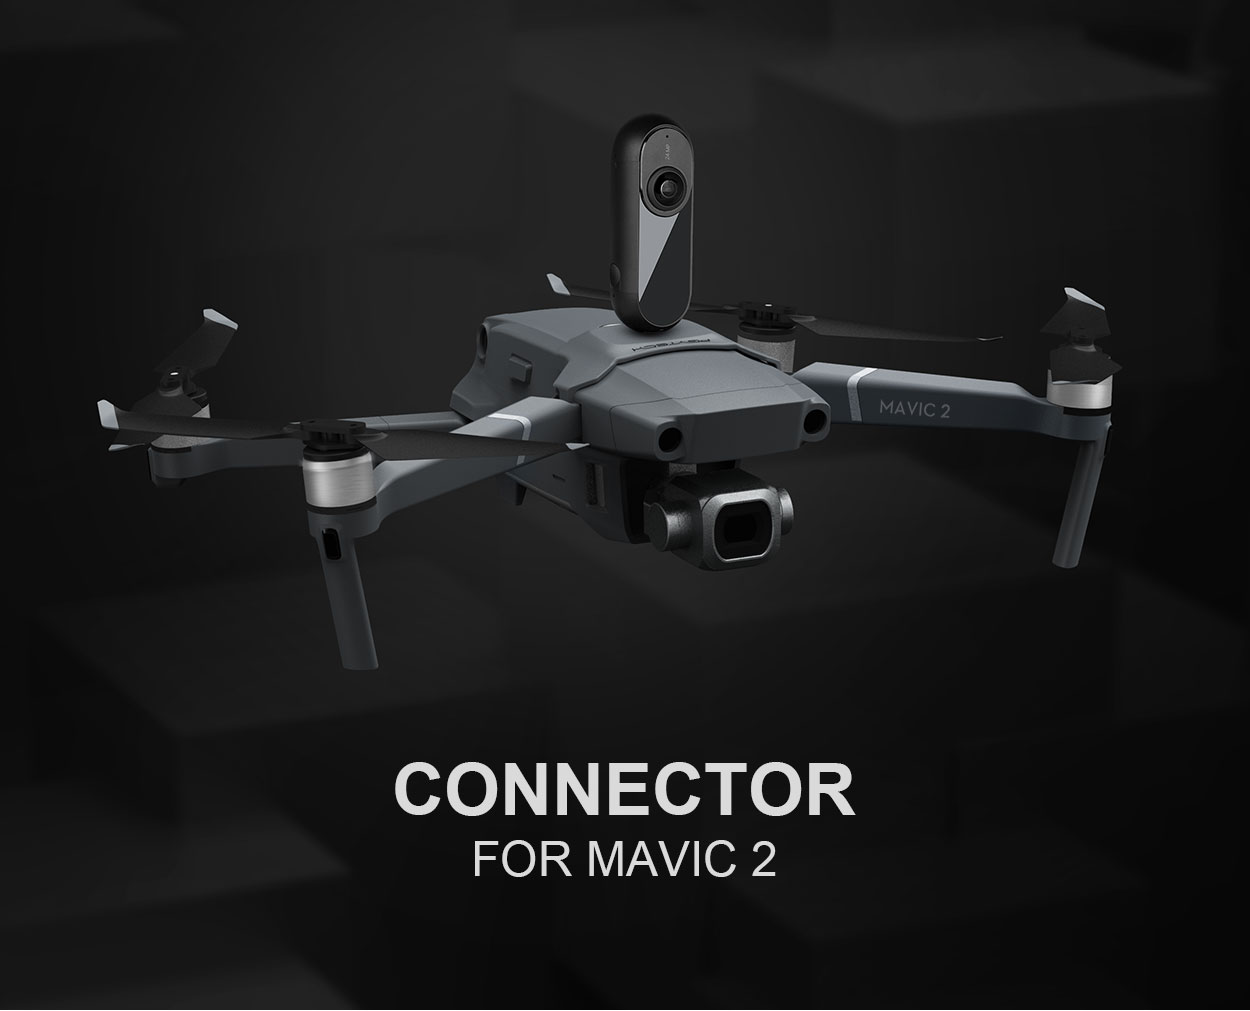 PGYTECH DJI Mavic 2 Pro/Zoom Connection Mount Adapter Connector For Sports action camera Mavic 2 Accessories